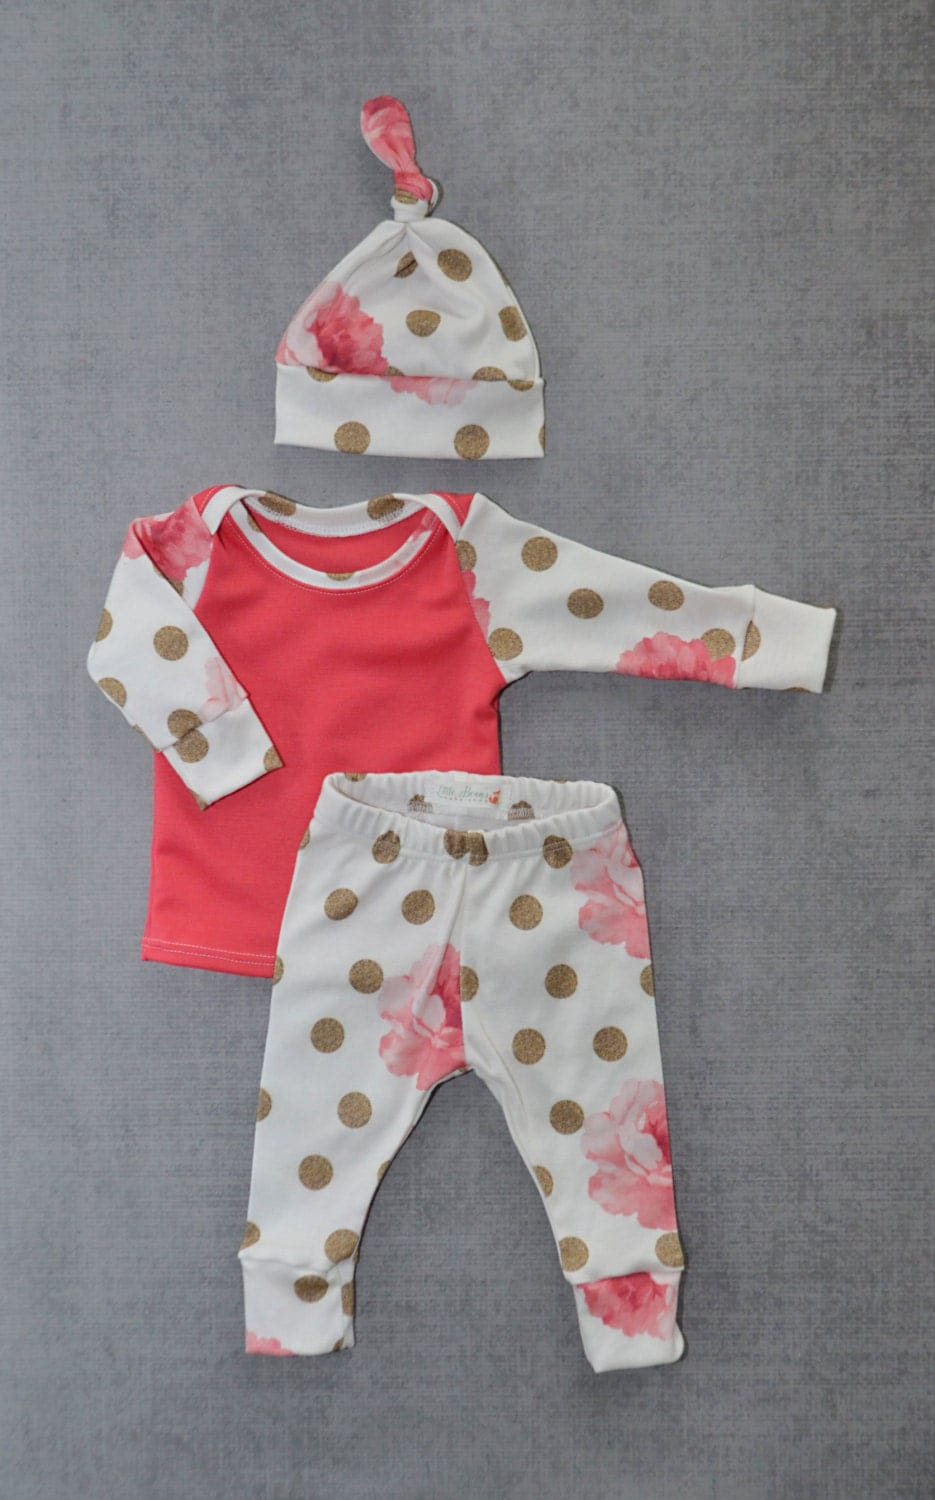 Mud Pie Santa Baby Glitter Star Sleep Gown ( Months) $ Add to Cart. Quick View Add to Cart. Quick View; New. Mud Pie Pink Mesh Girls Take Me Home Set ( Months) $ Add to Cart. Quick View; New. Embroidered Take Me Home Set by Mud Pie ( months) Special Price $ Regular Price: $ Add to Cart.